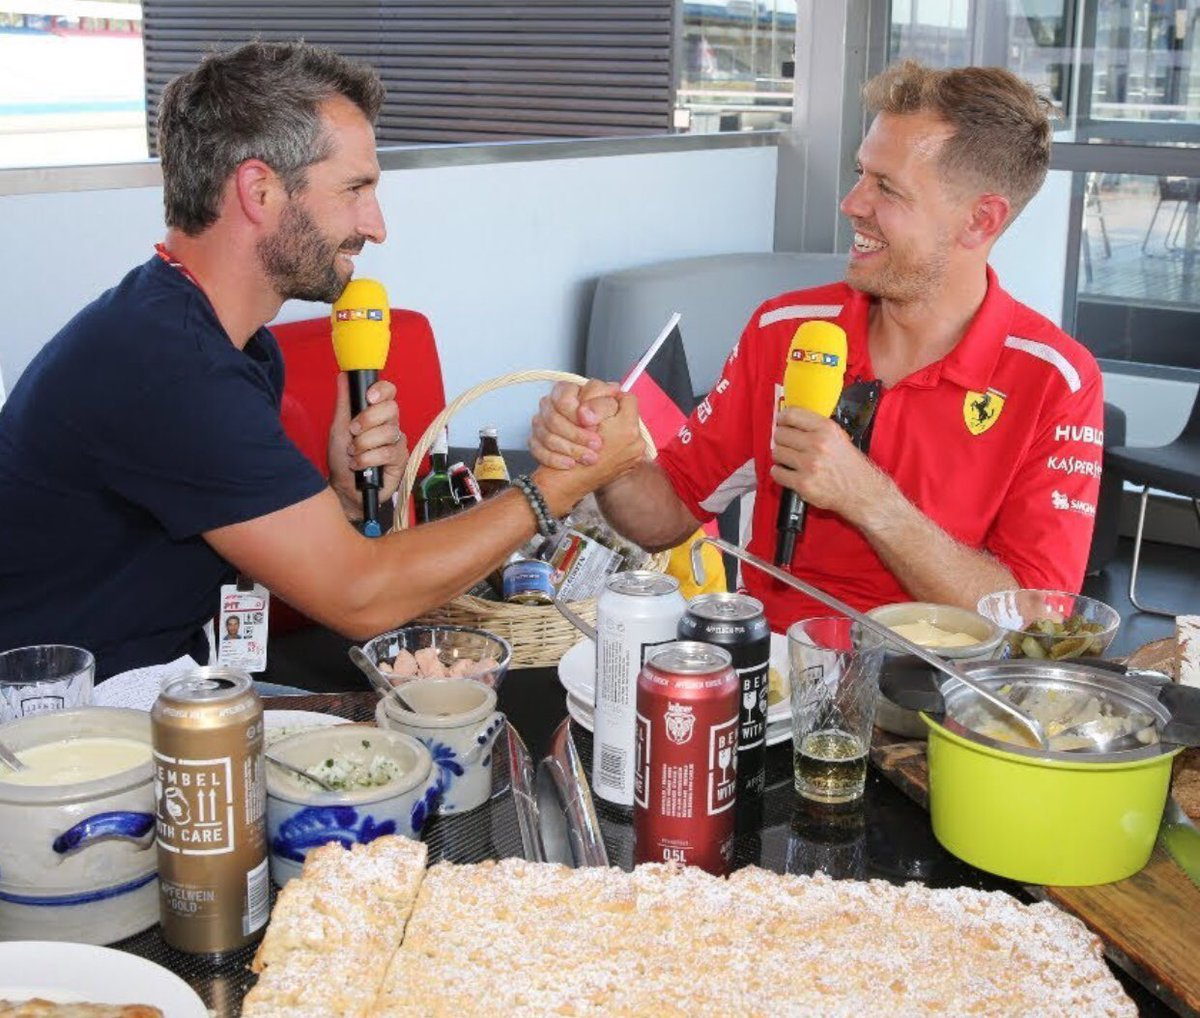 Home race is always so magic 😀🇩🇪⁣ .⁣ .⁣ #GermanyGP🇩🇪 #Seb5 #Vettel #SebastianVettel #ScuderiaFerrari #F1